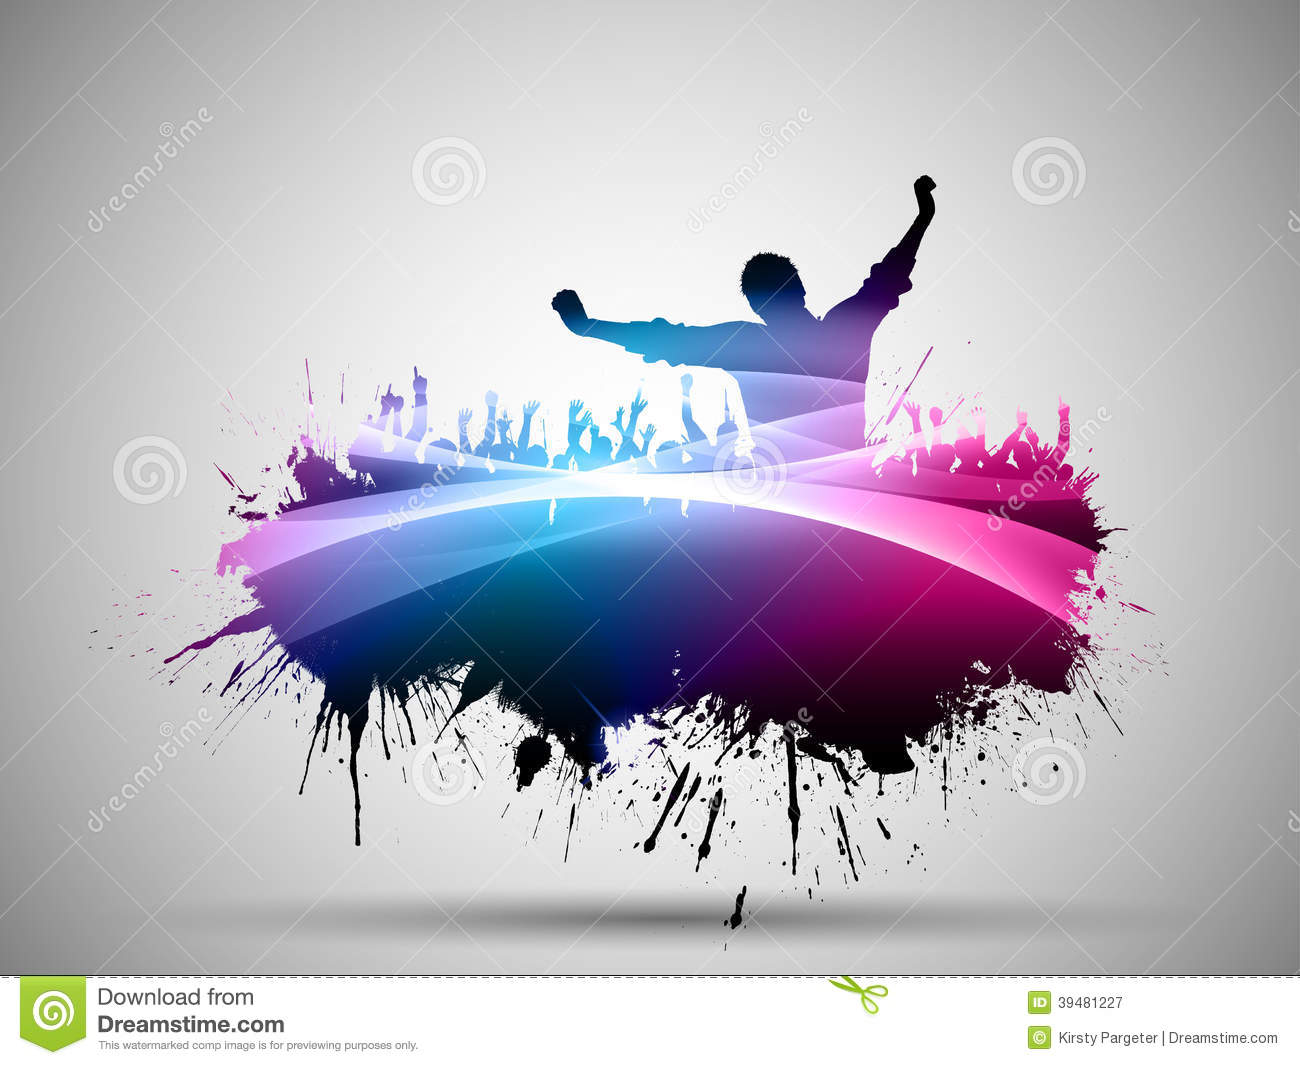 Silhouette Dance Music Abstract Background: Abstract Grunge Party Background Stock Vector